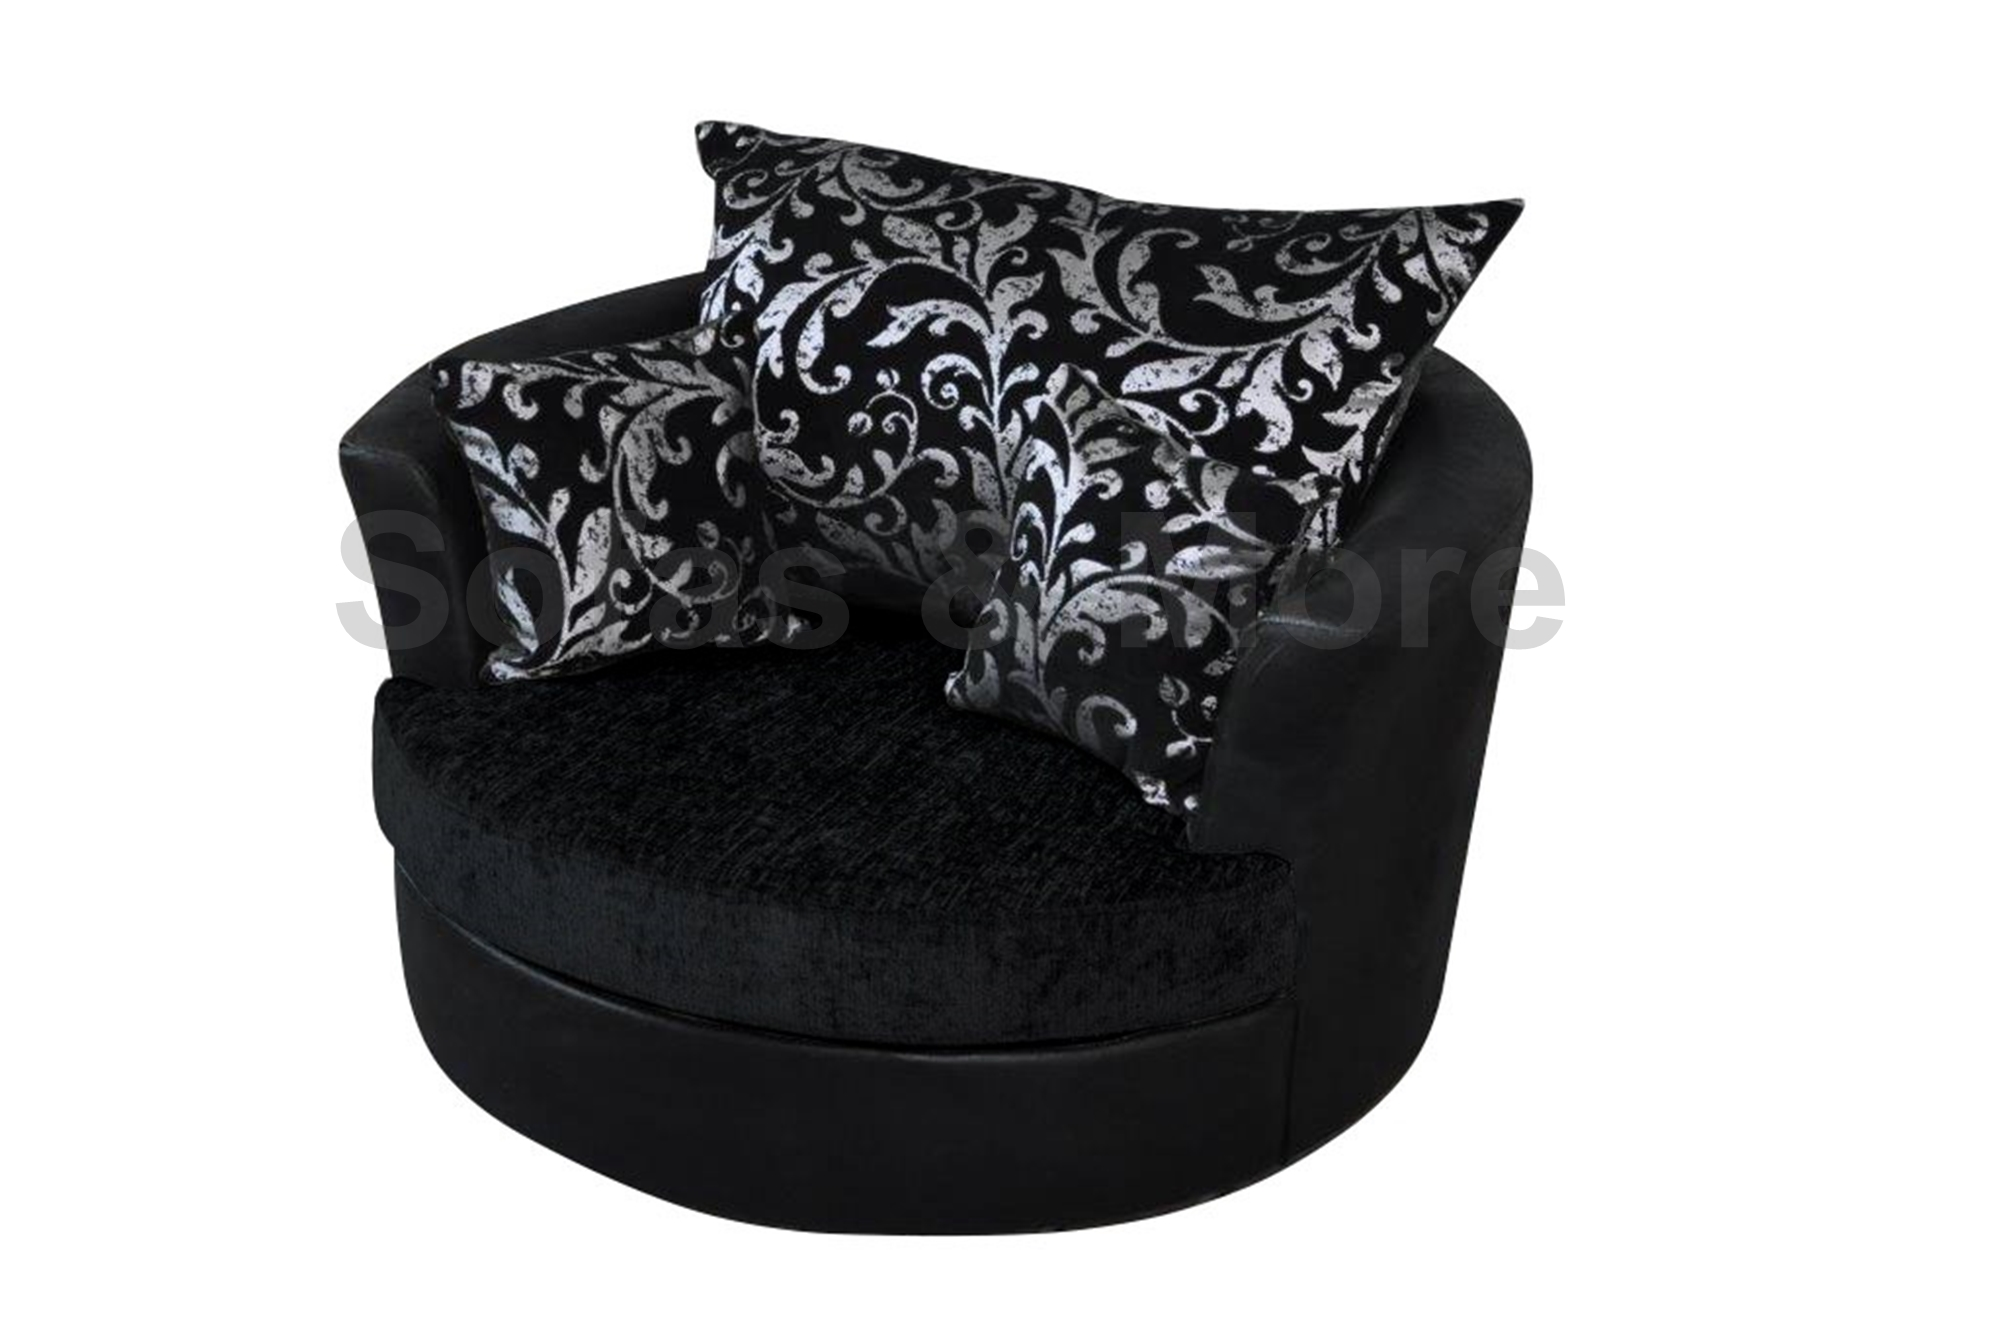 Large Swivel Round Cuddle Chair Chenille Fabric Grey Black ...